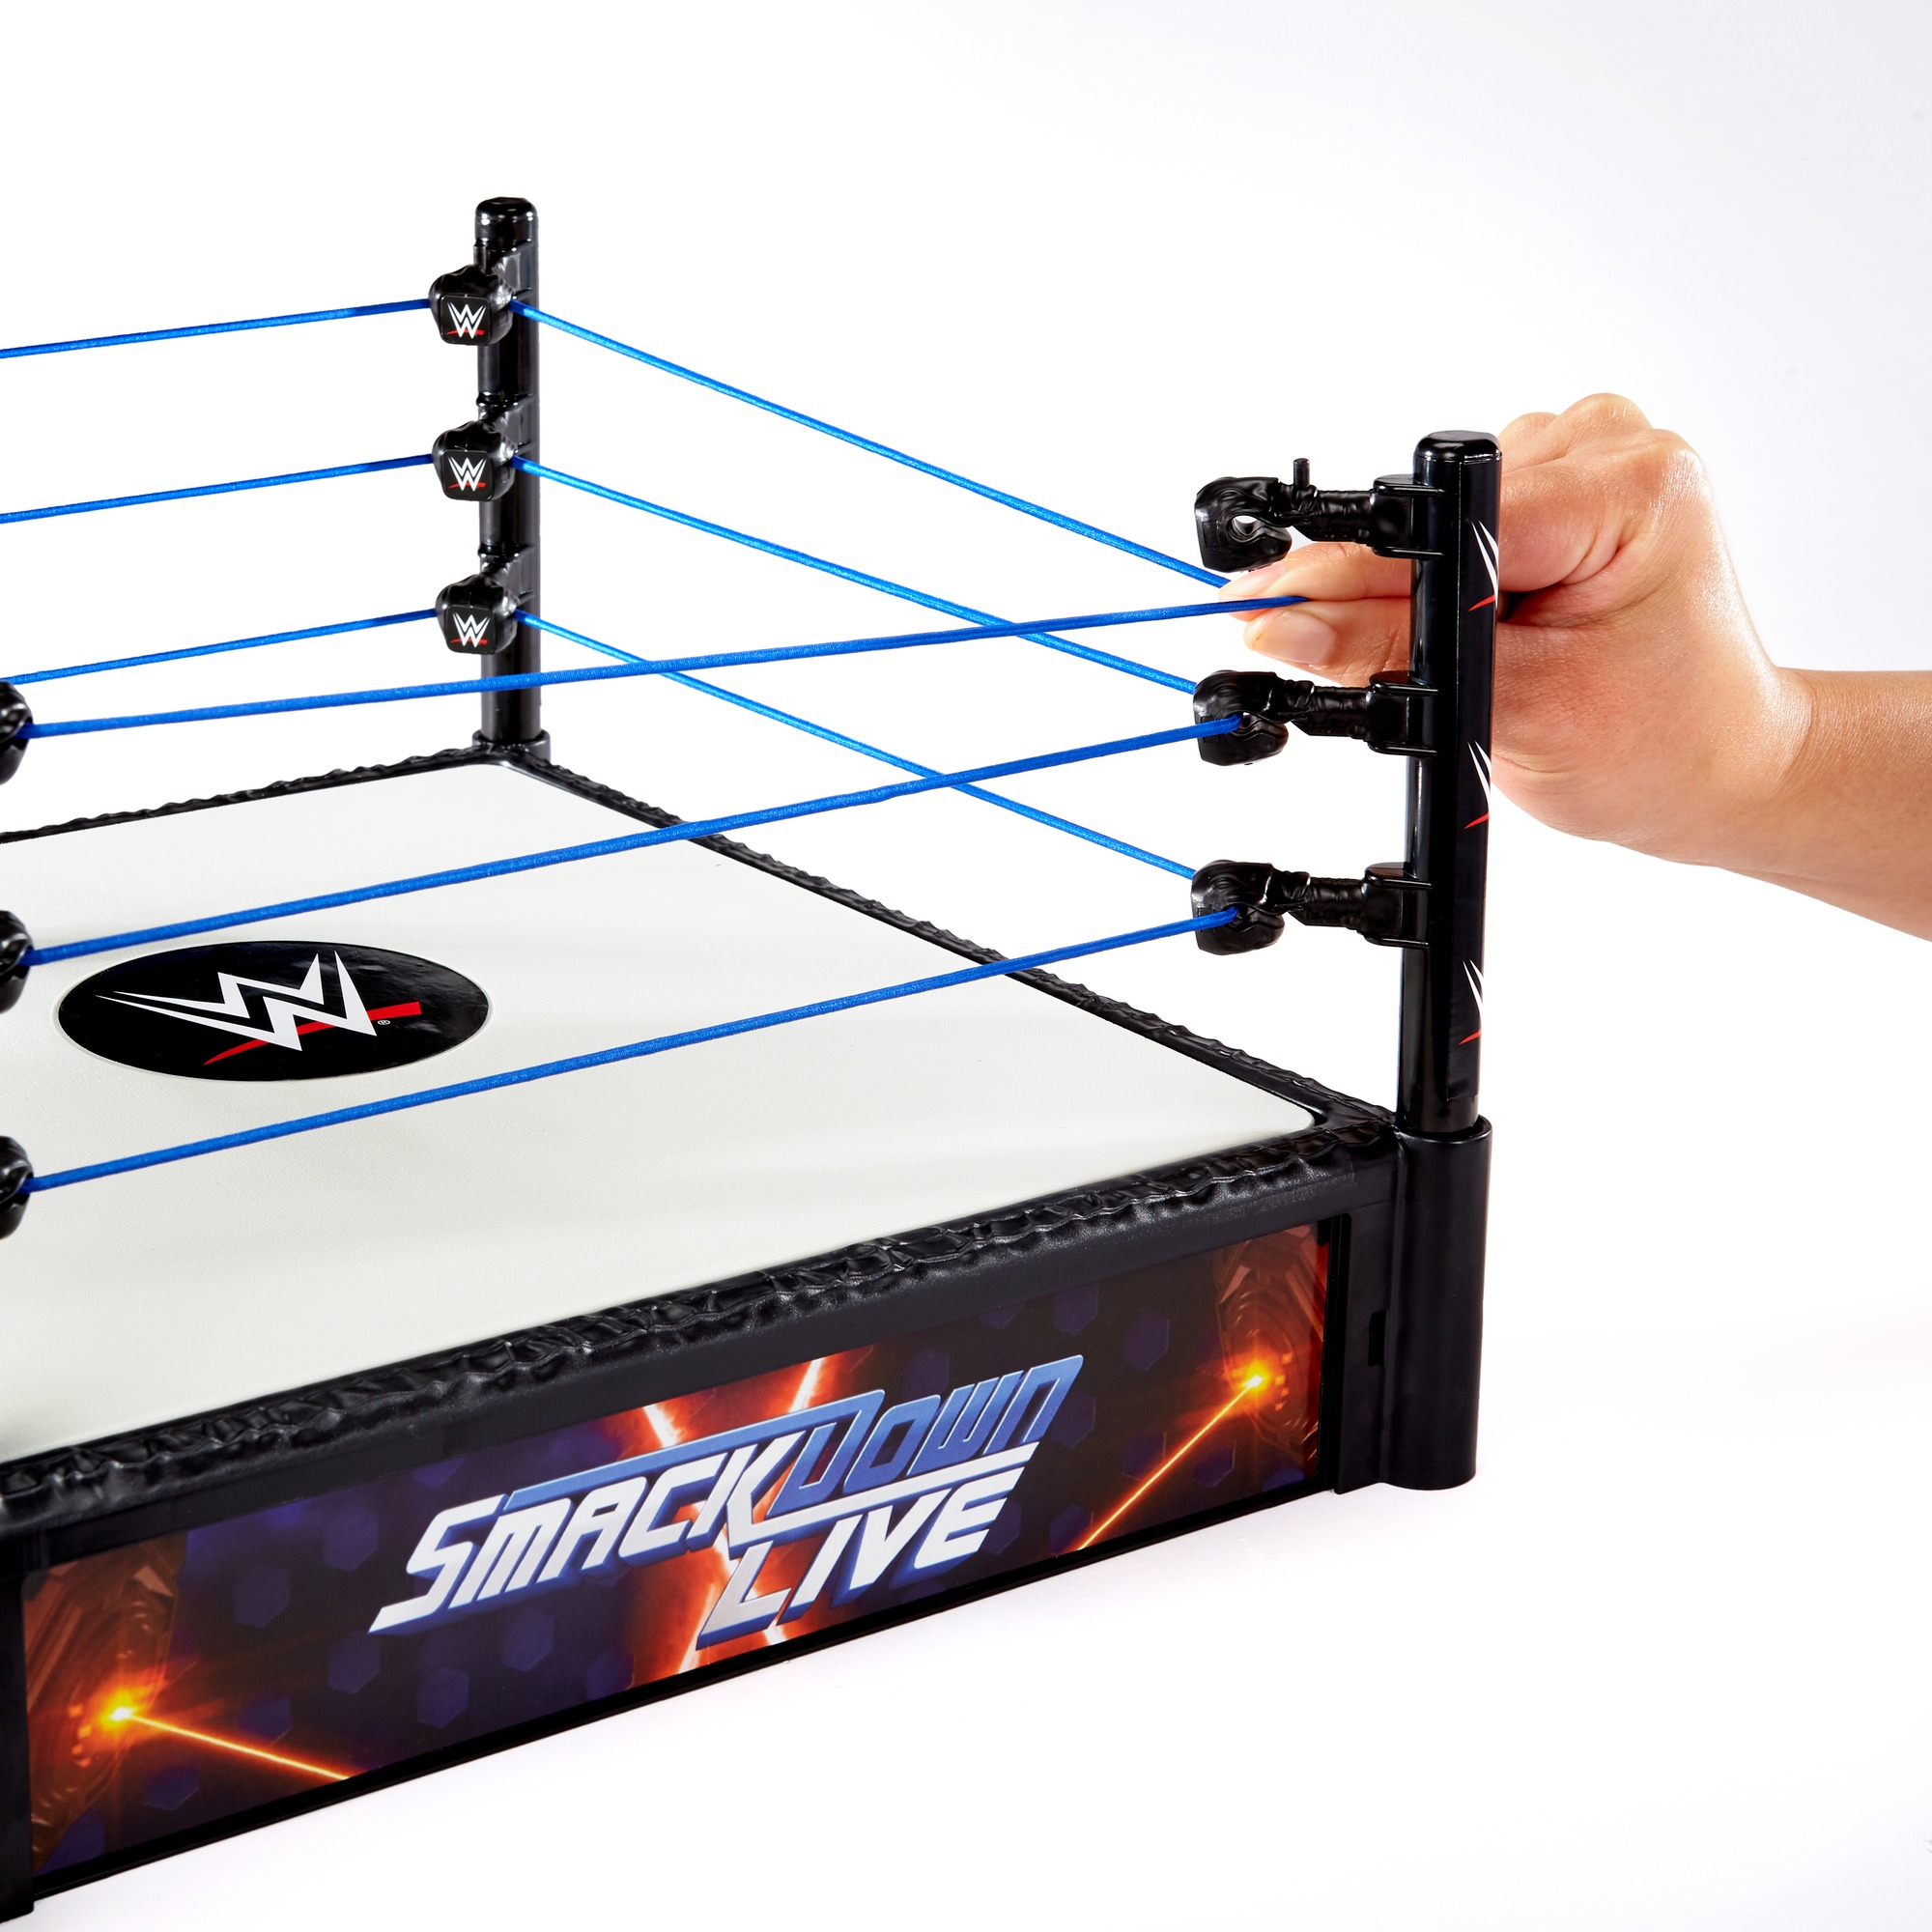 WWE Smackdown Live / Royal Rumble Superstar Ring